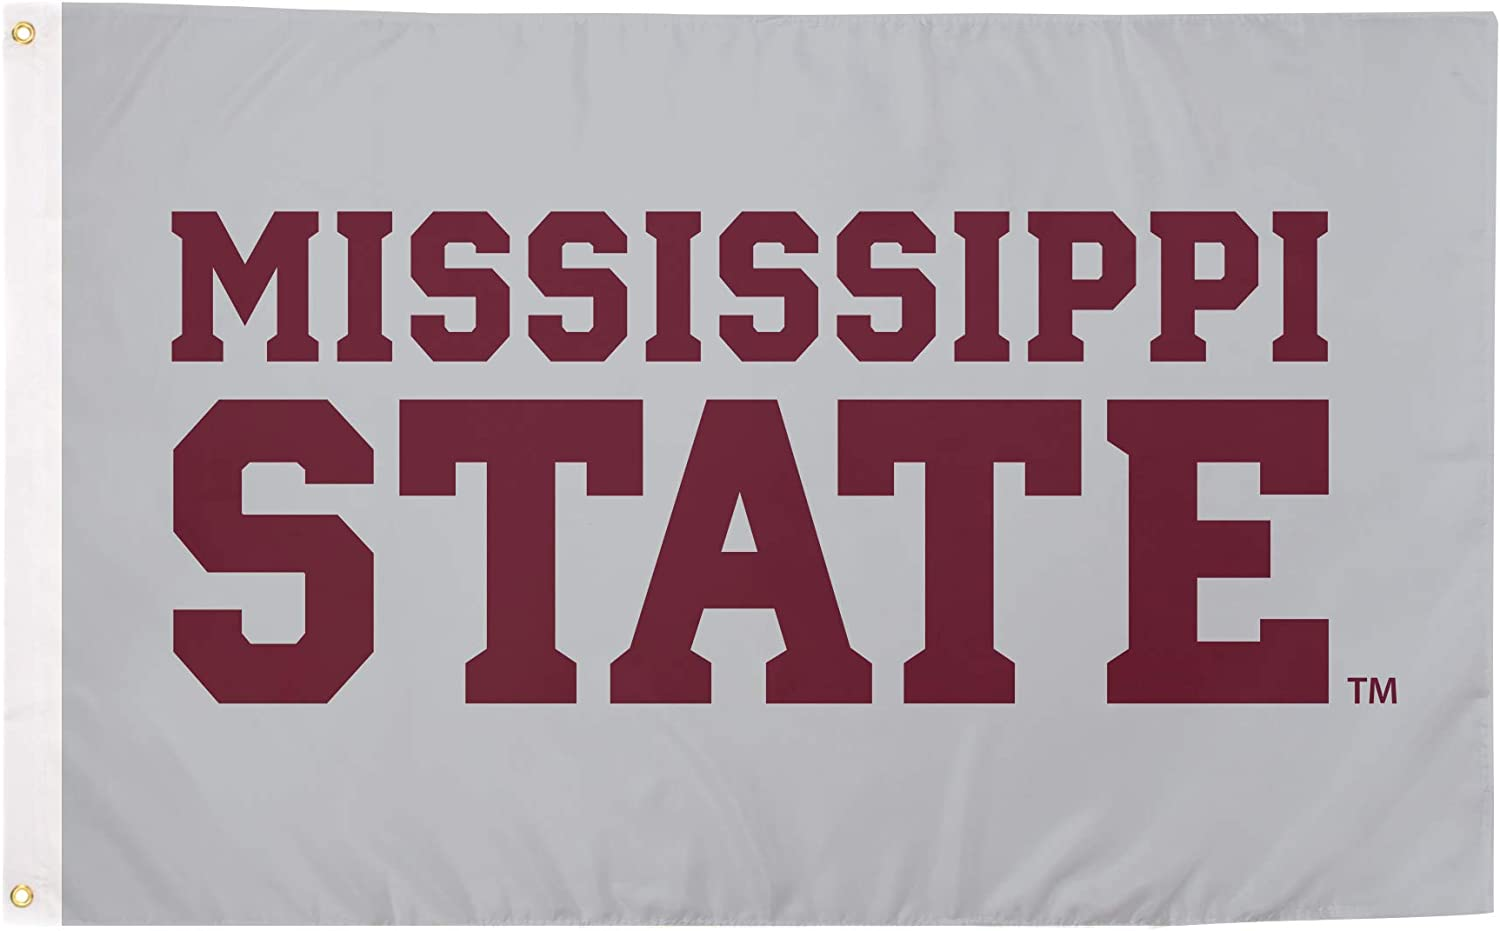 Desert Cactus Mississippi State University 100% Polyester Indoor Outdoor 3 feet x 5 feet Flag (Style 8)